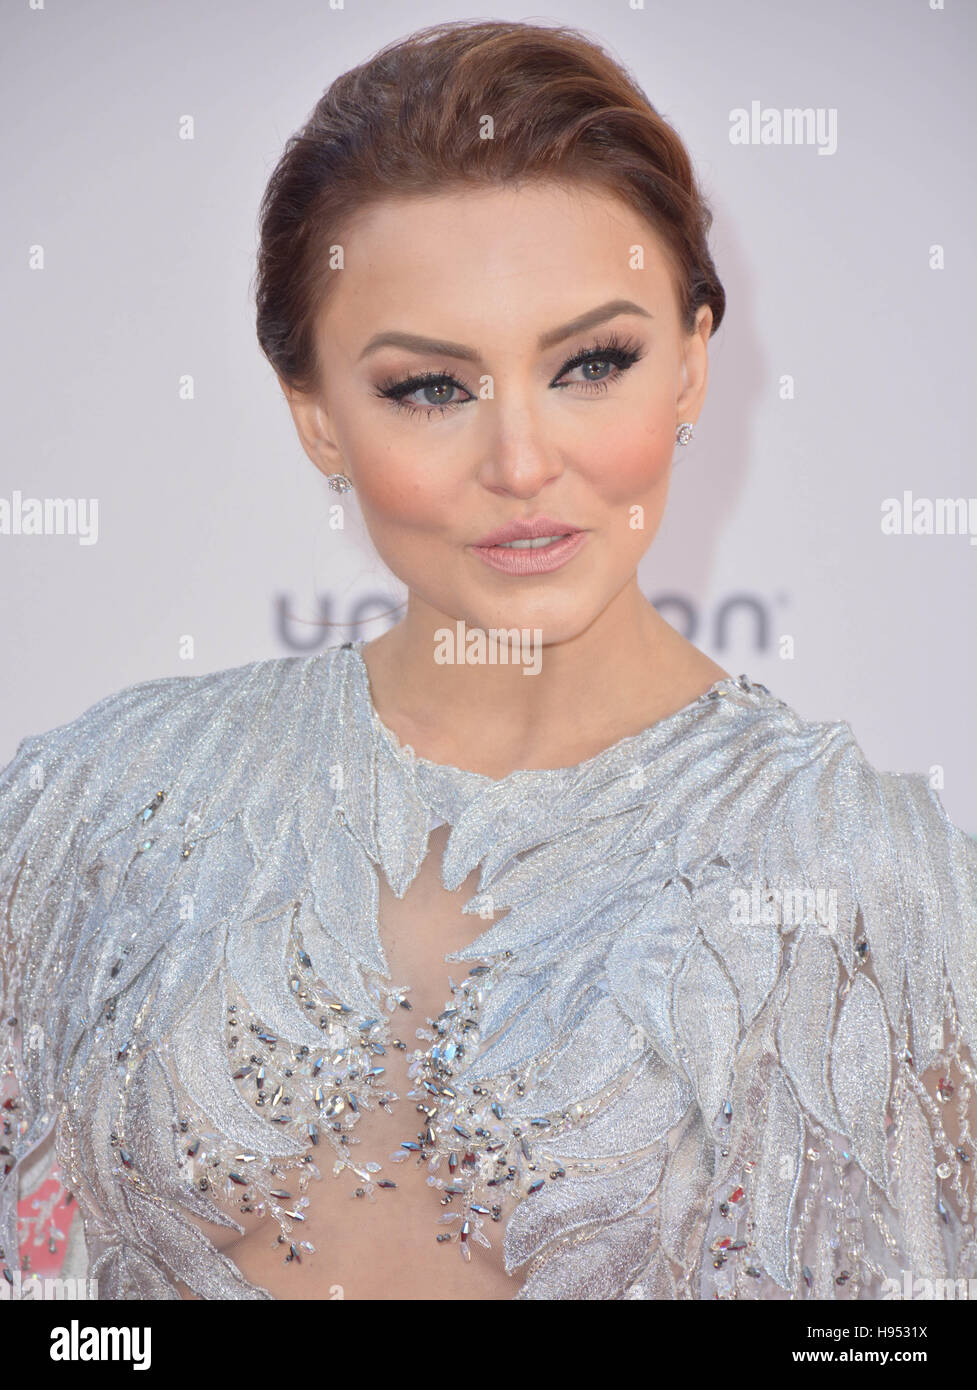 Angelique Boyer angelique boyer stock photos & angelique boyer stock images